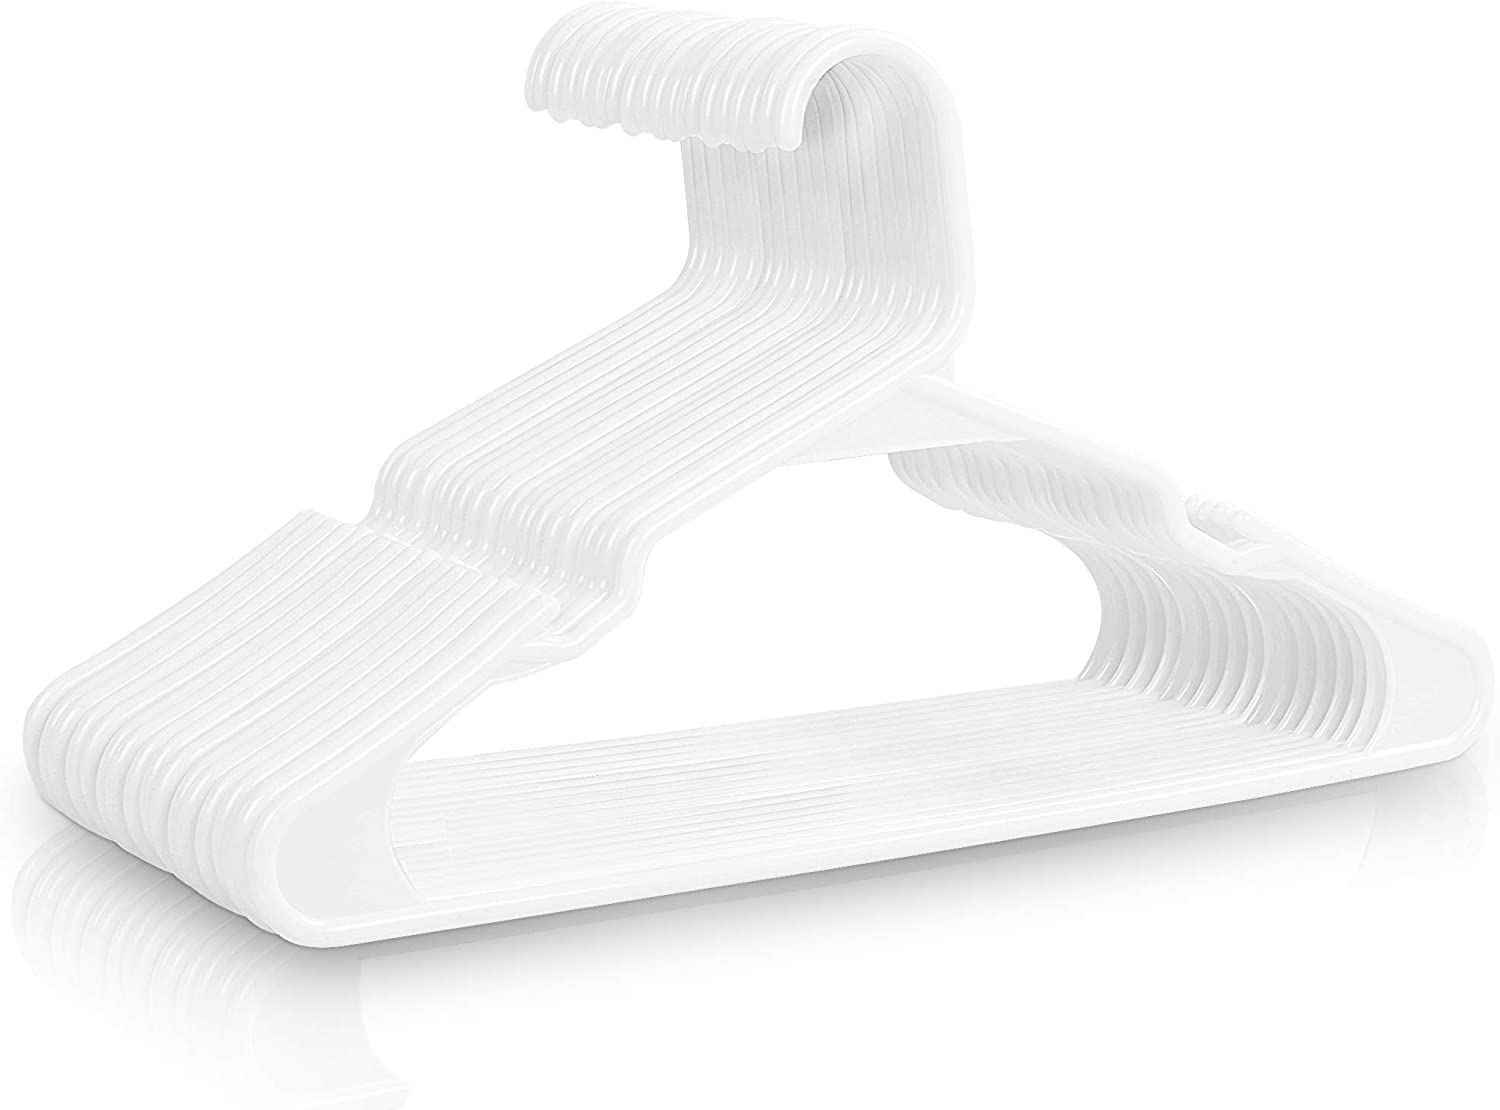 Utopia Home Premium Plastic Hanger - Heavy Duty and Sturdy Plastic Clothes Hanger for Coats, Pants and Shirts - Pack of 40